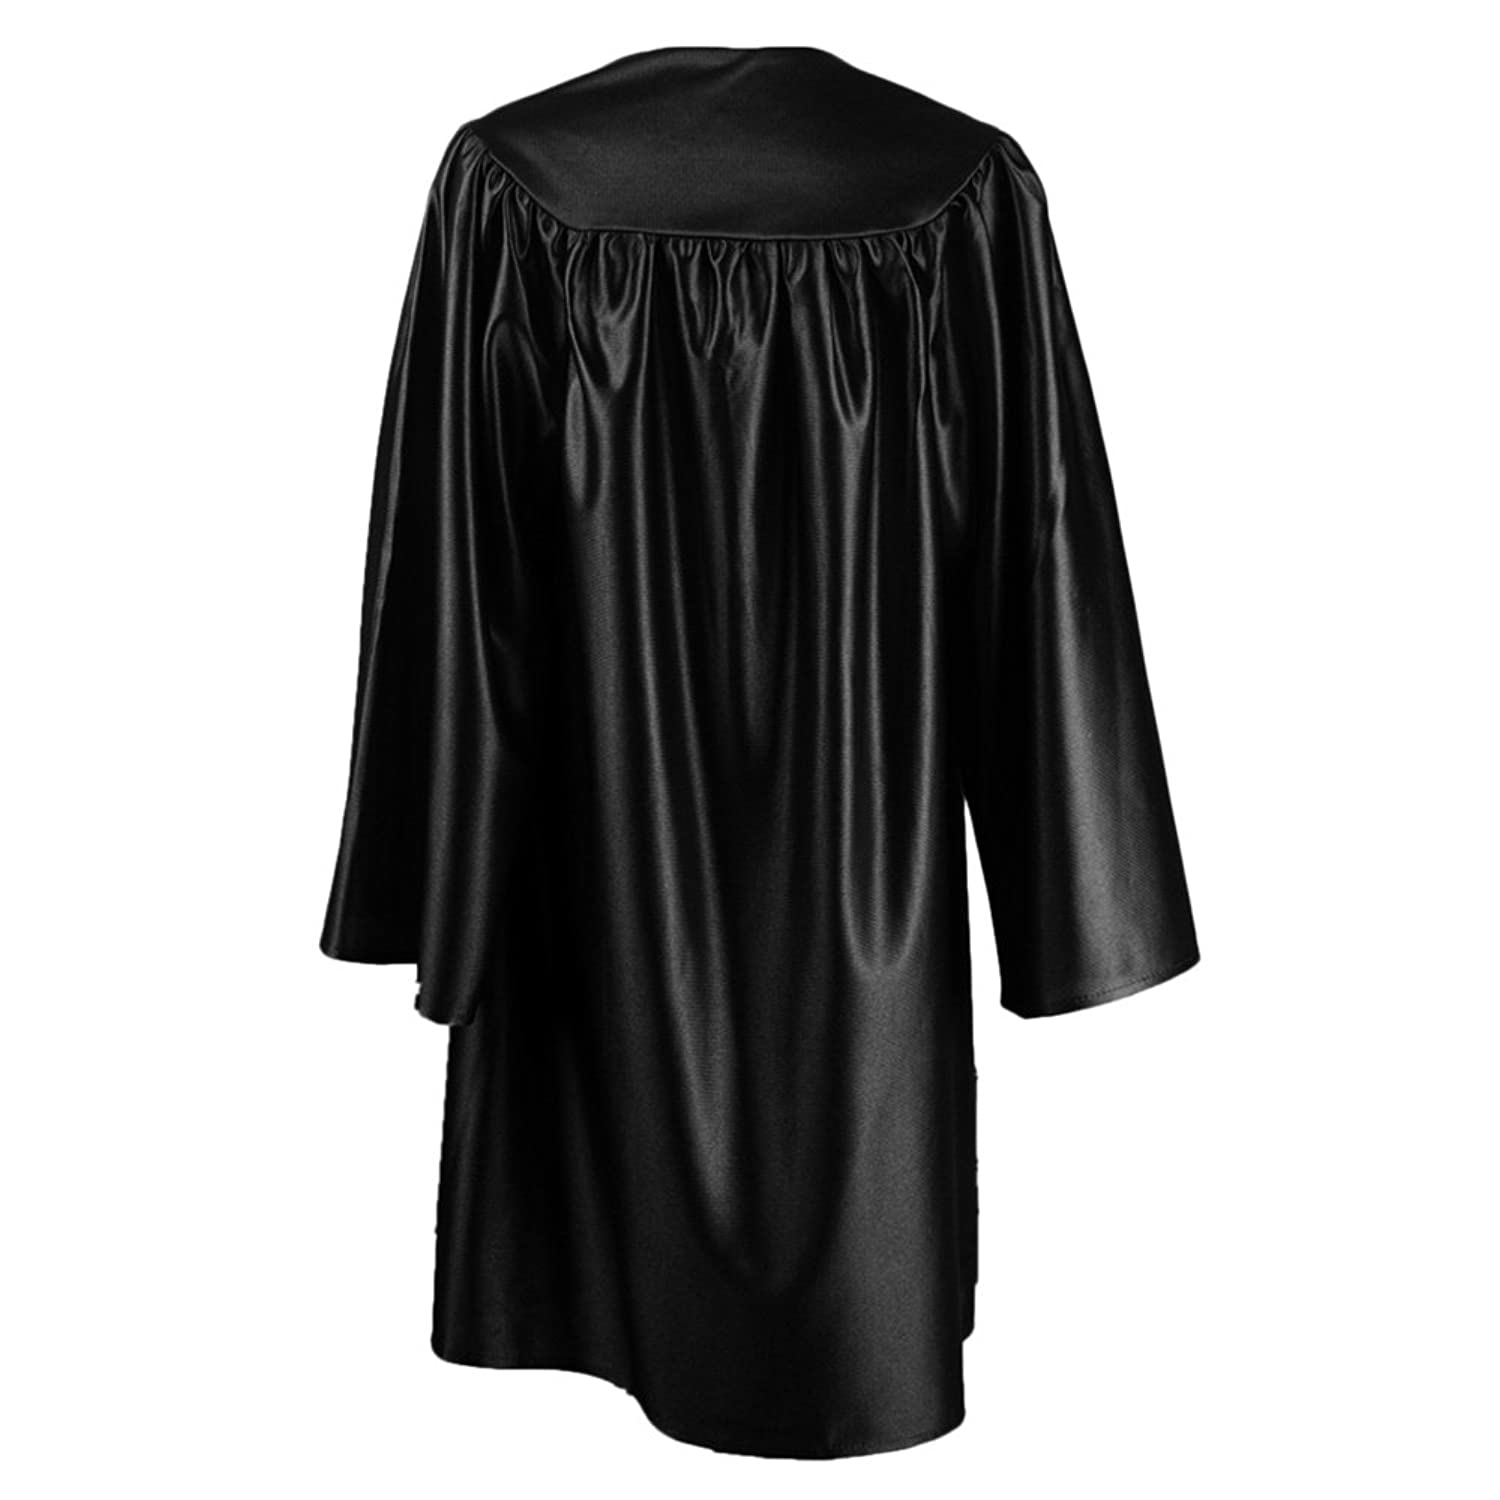 Cap and gown for kindergarten - Amazon Com 2018 Year Charm Available Graduationmall Kindergarten Graduation Gown Cap Tassel Set 2017 Clothing